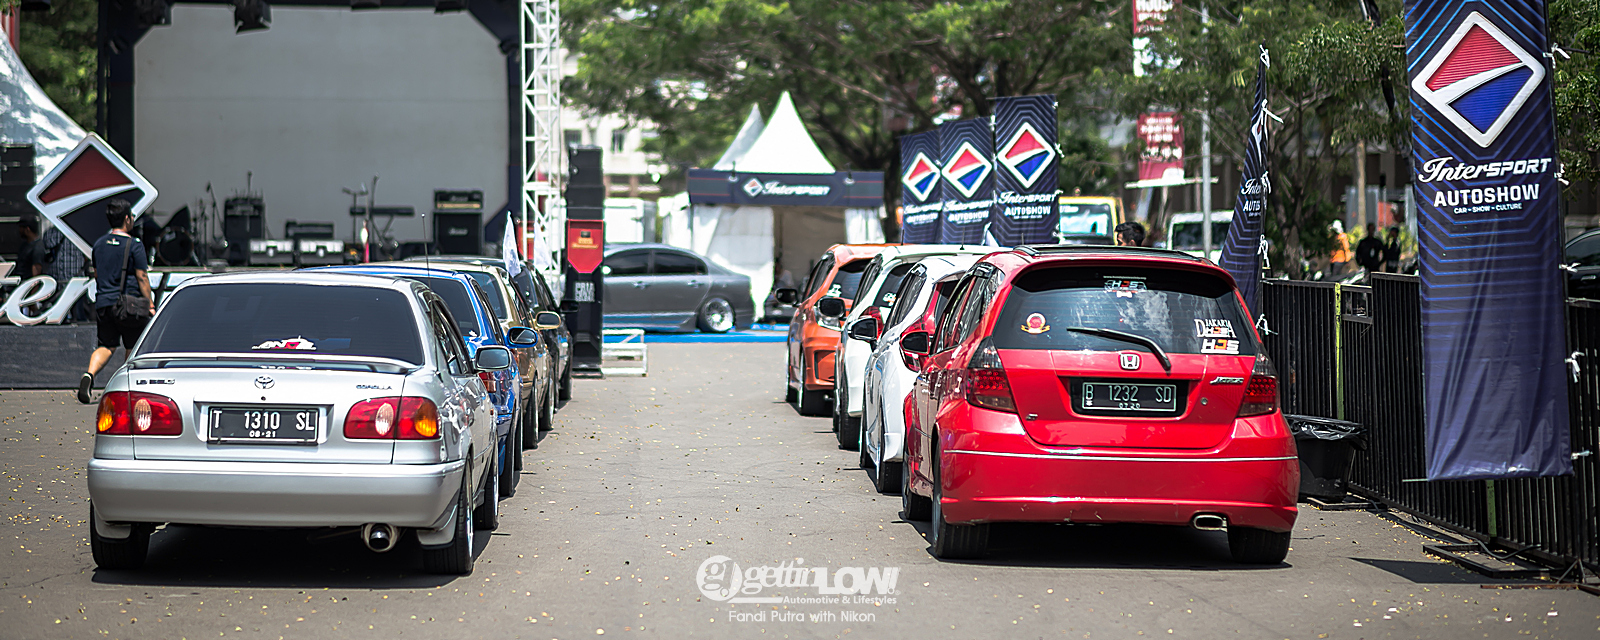 INTERSPORT-AUTOSHOW-KARAWANG_006